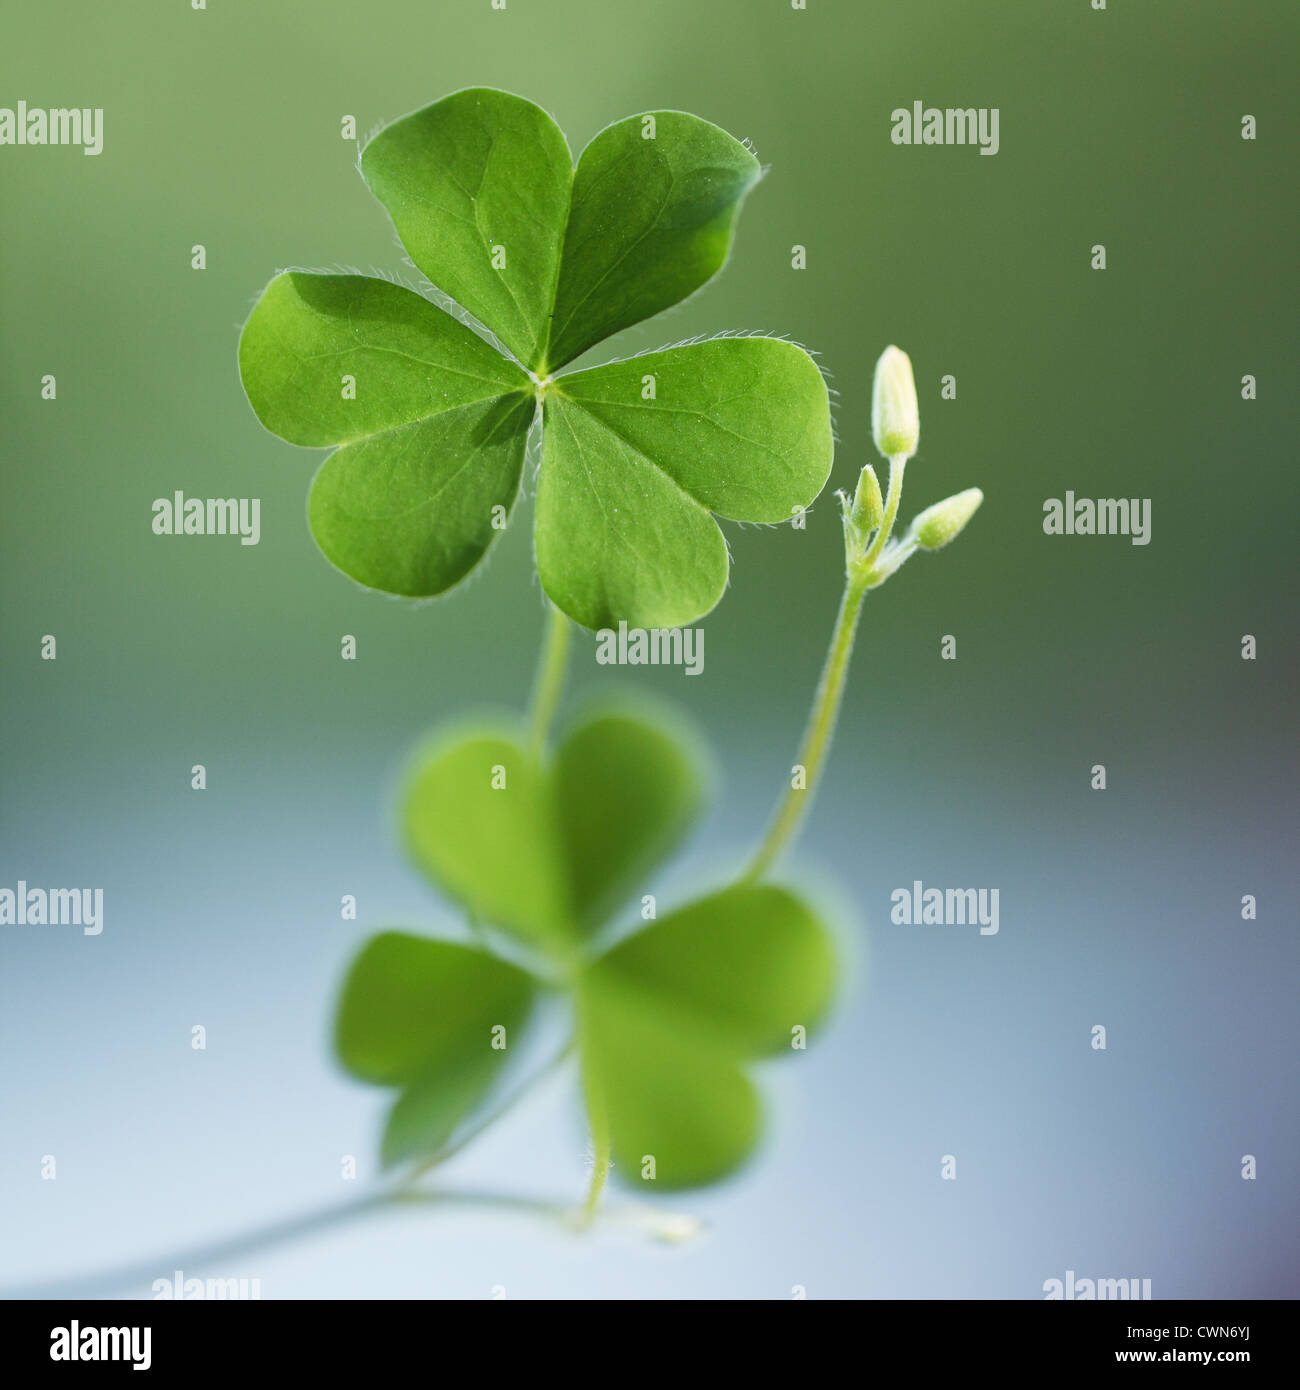 Three leaf clovers for backgrounds - Stock Image